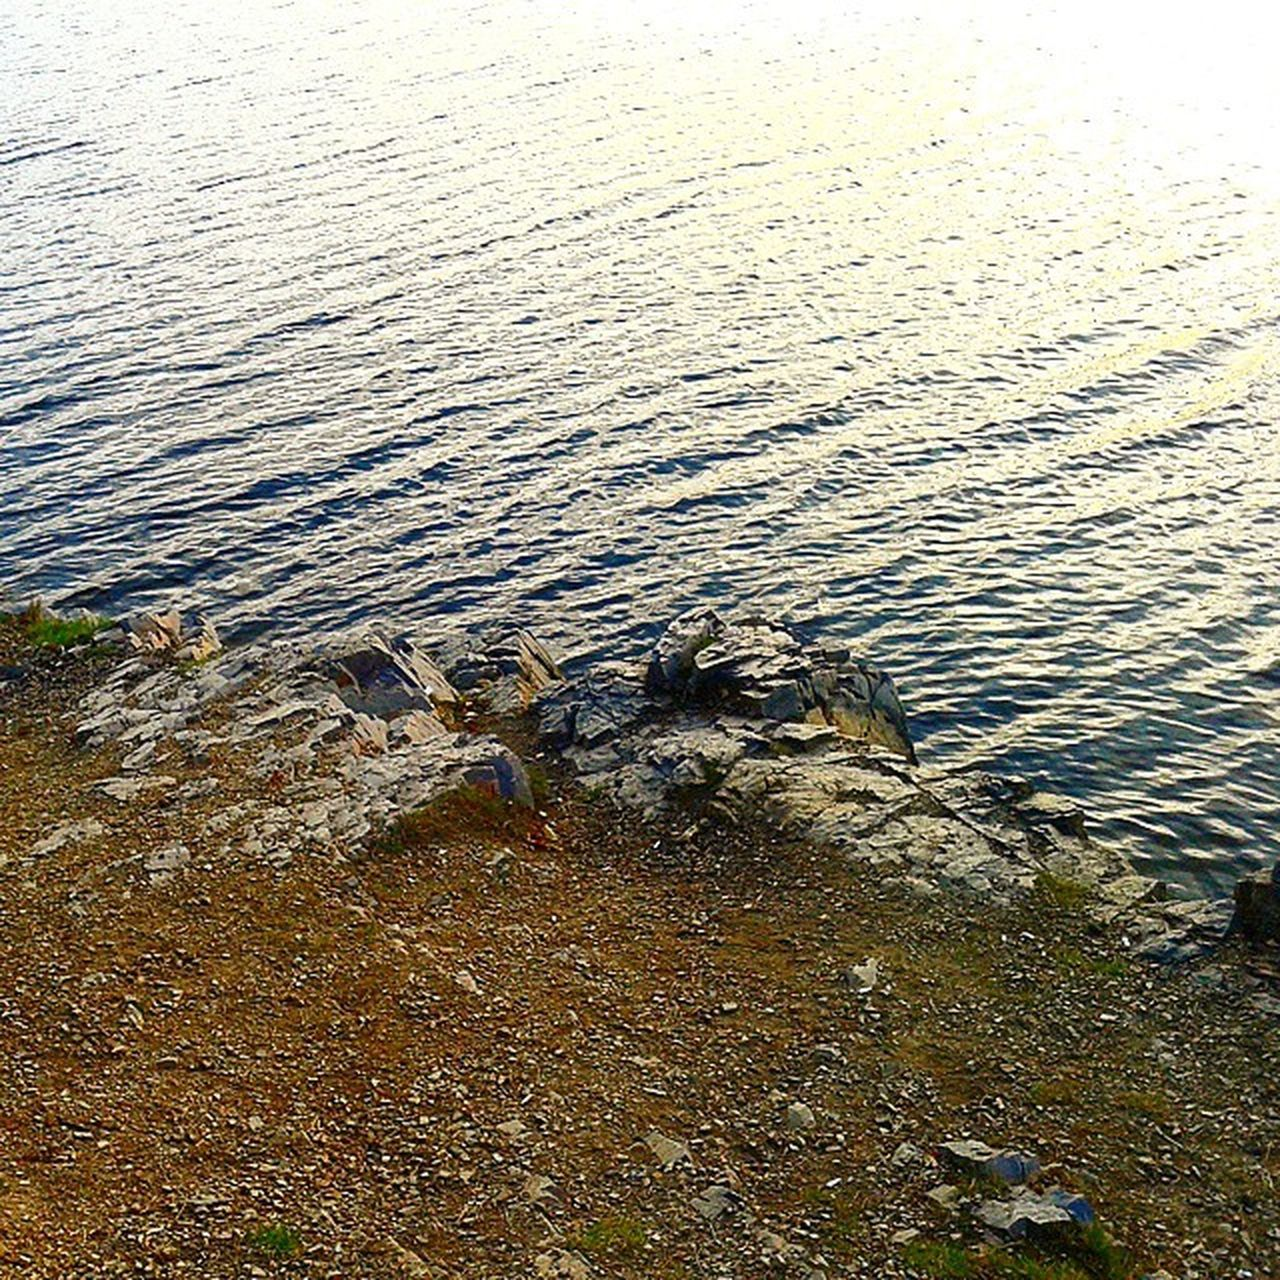 water, lake, nature, rippled, high angle view, no people, day, tranquility, outdoors, beauty in nature, animal themes